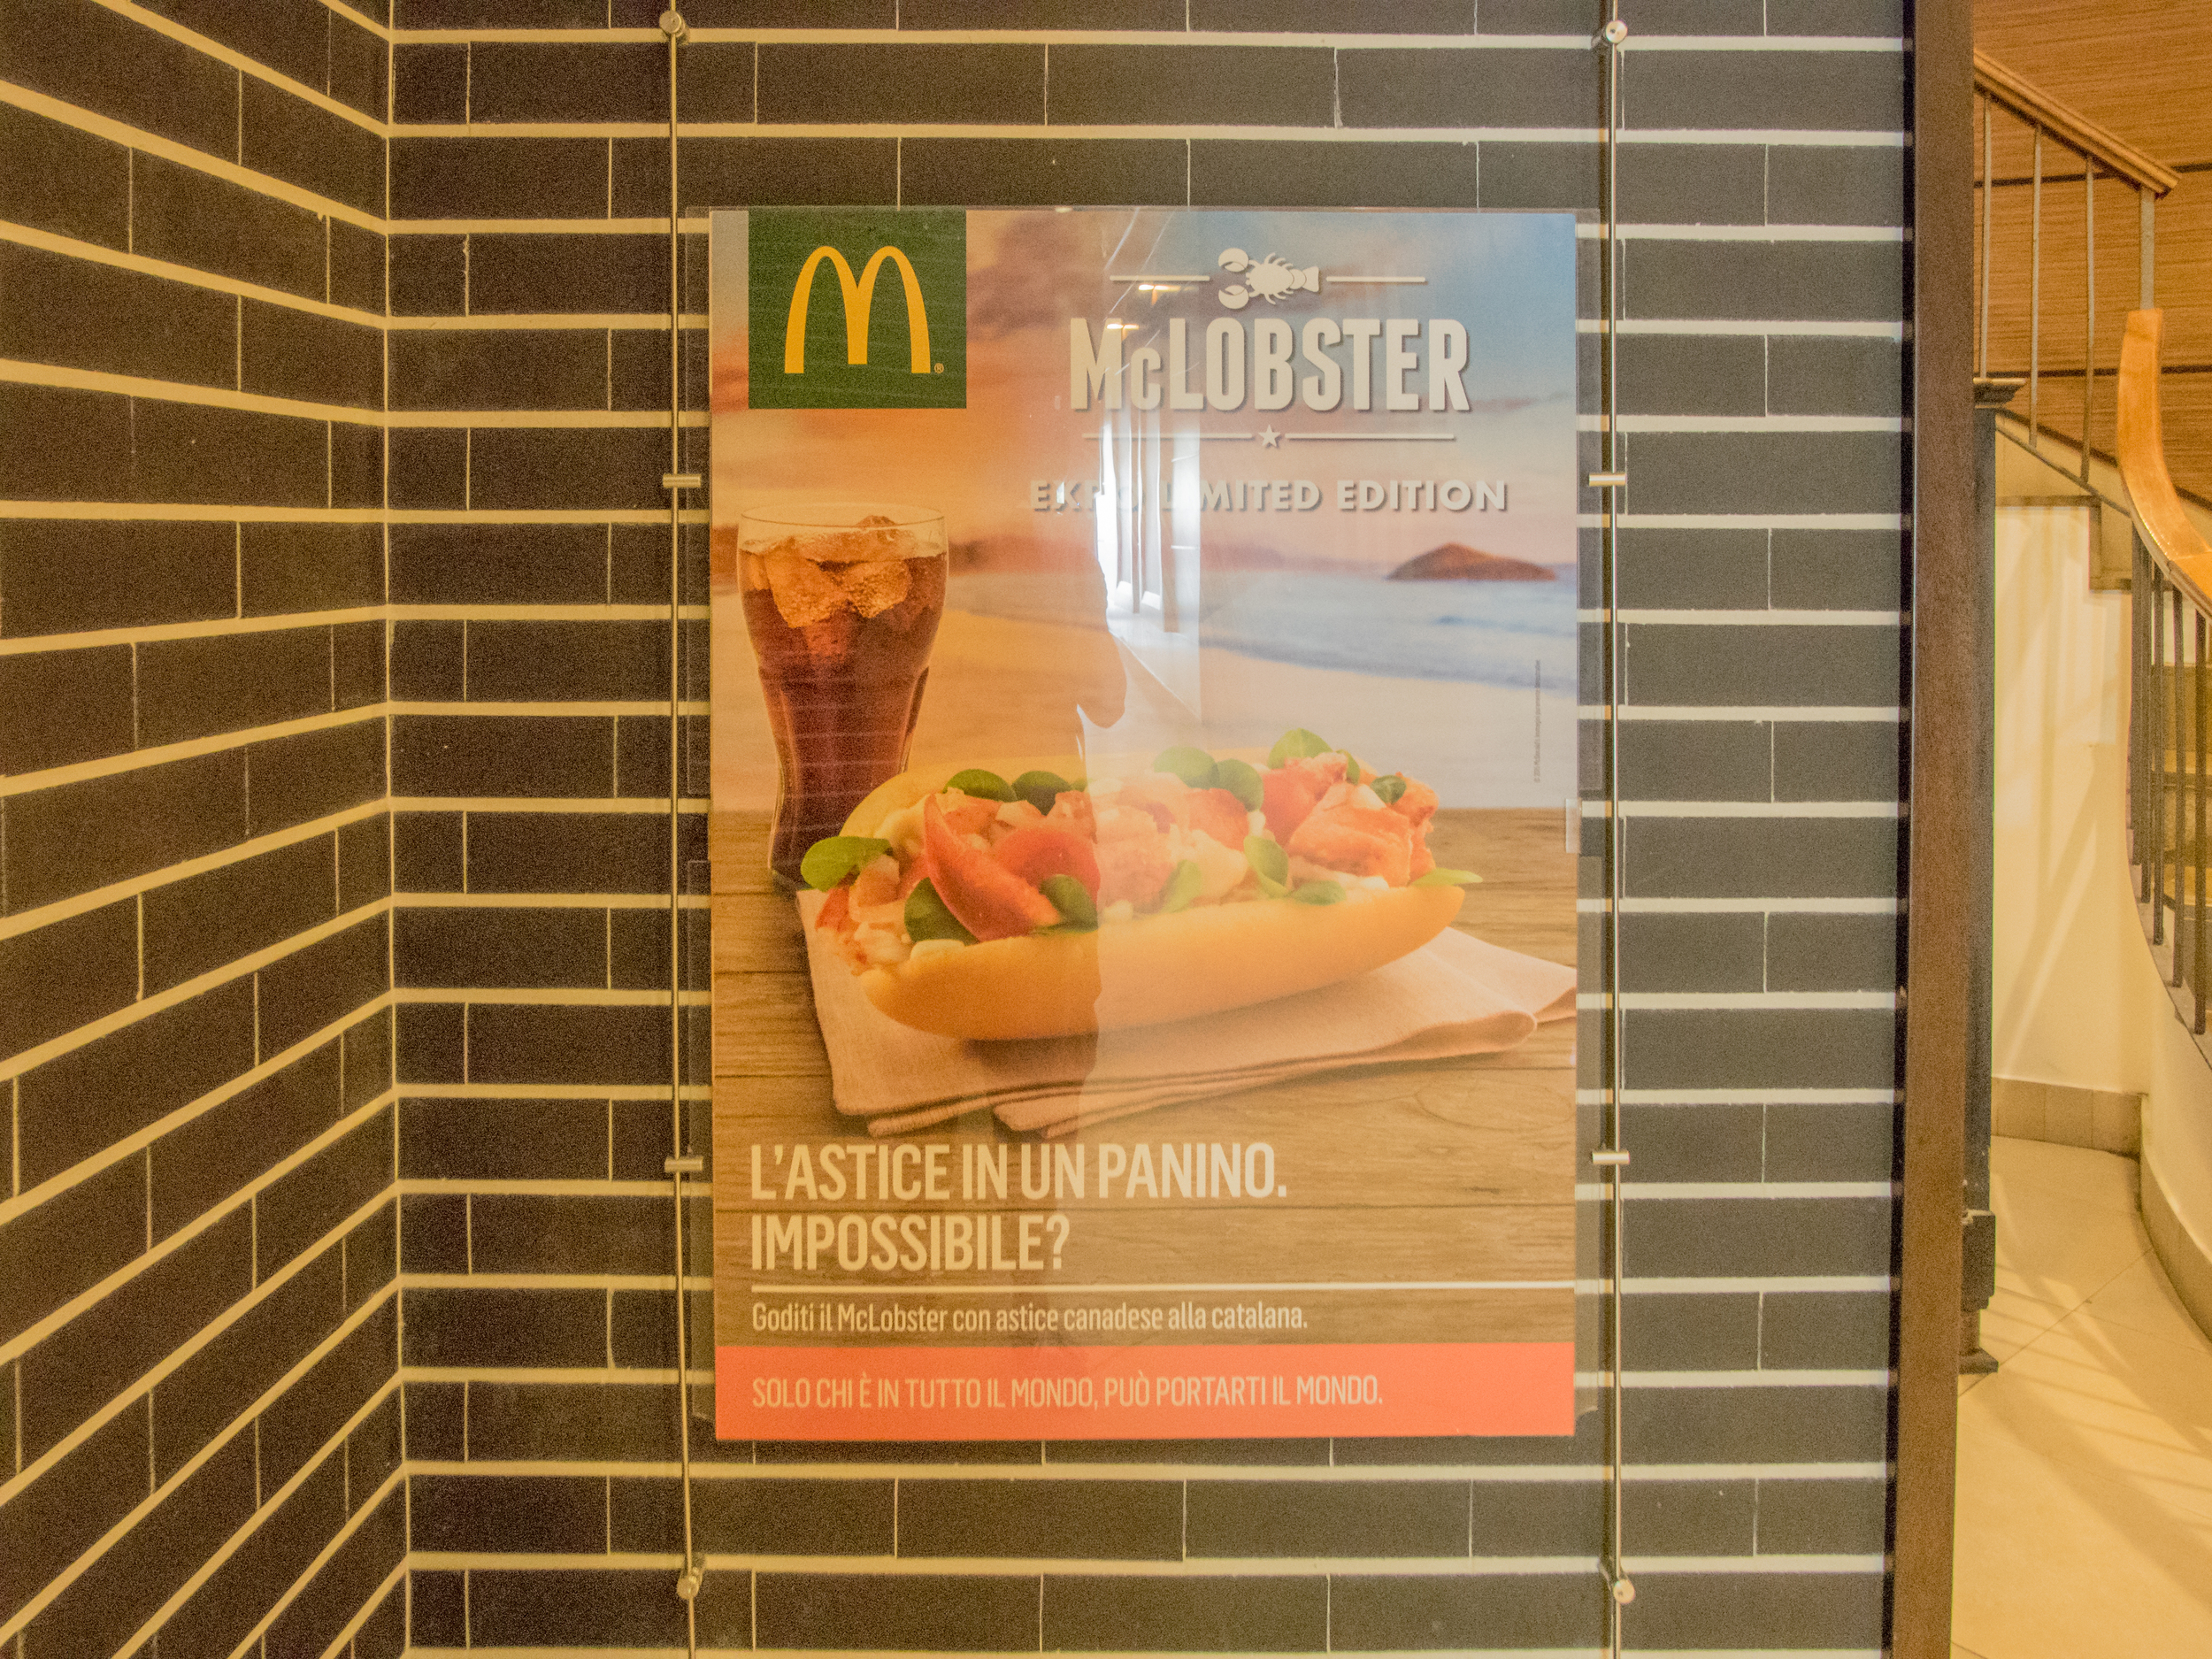 McDonalds Lobster say what?!?!